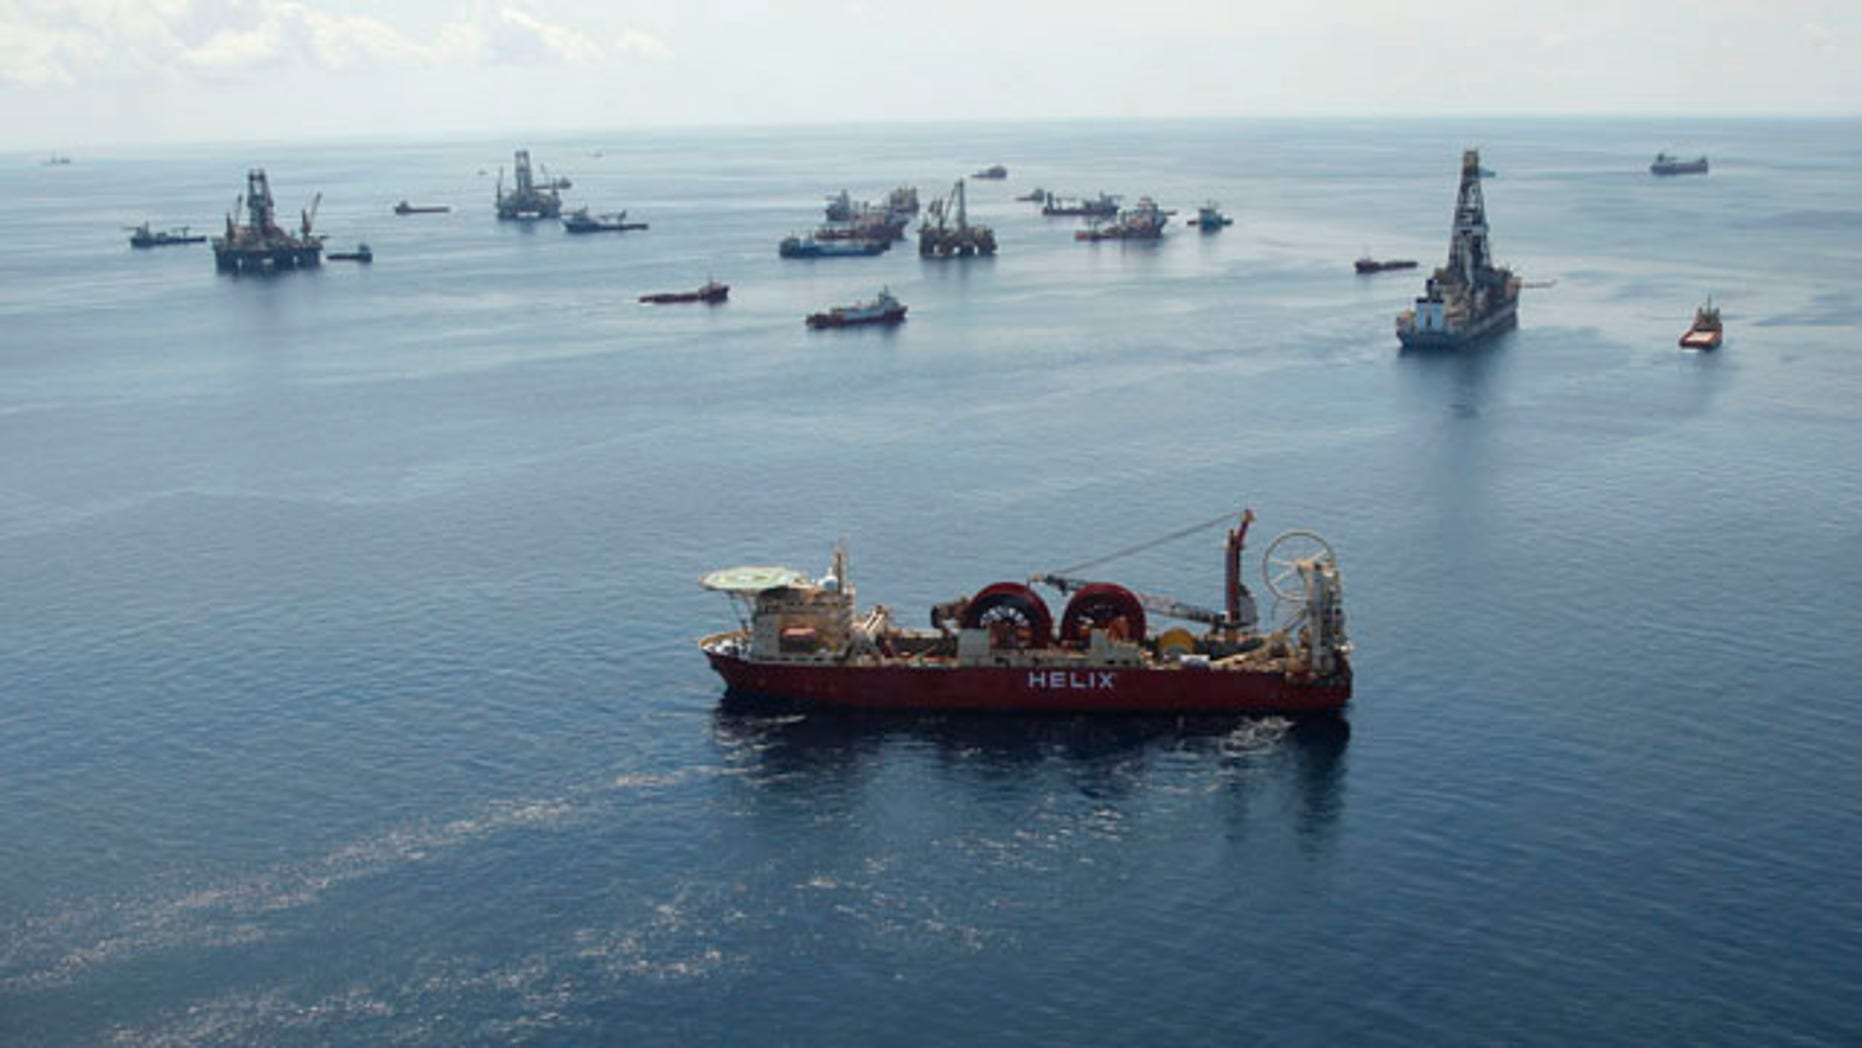 Aug. 3: A support vessel, foreground center, and others surround the Helix Q4000, background center, used to perform the static kill operation, at the site of the Deepwater Horizon Oil Spill in the Gulf of Mexico, off the coast of Louisiana.